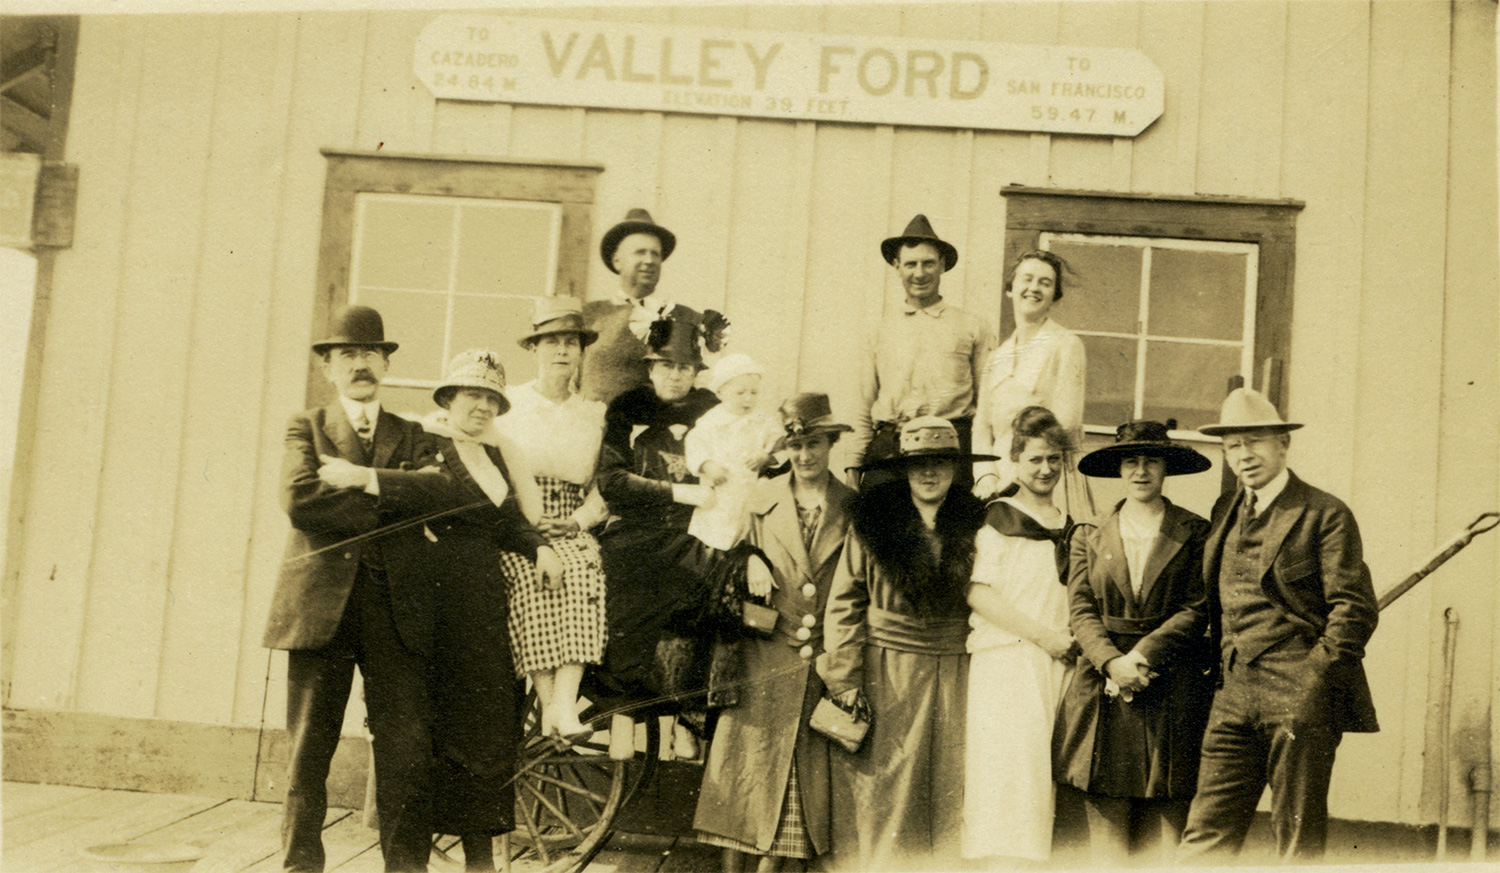 A well-dressed crowd poses at the Valley Ford railroad depot, circa early 20th century.